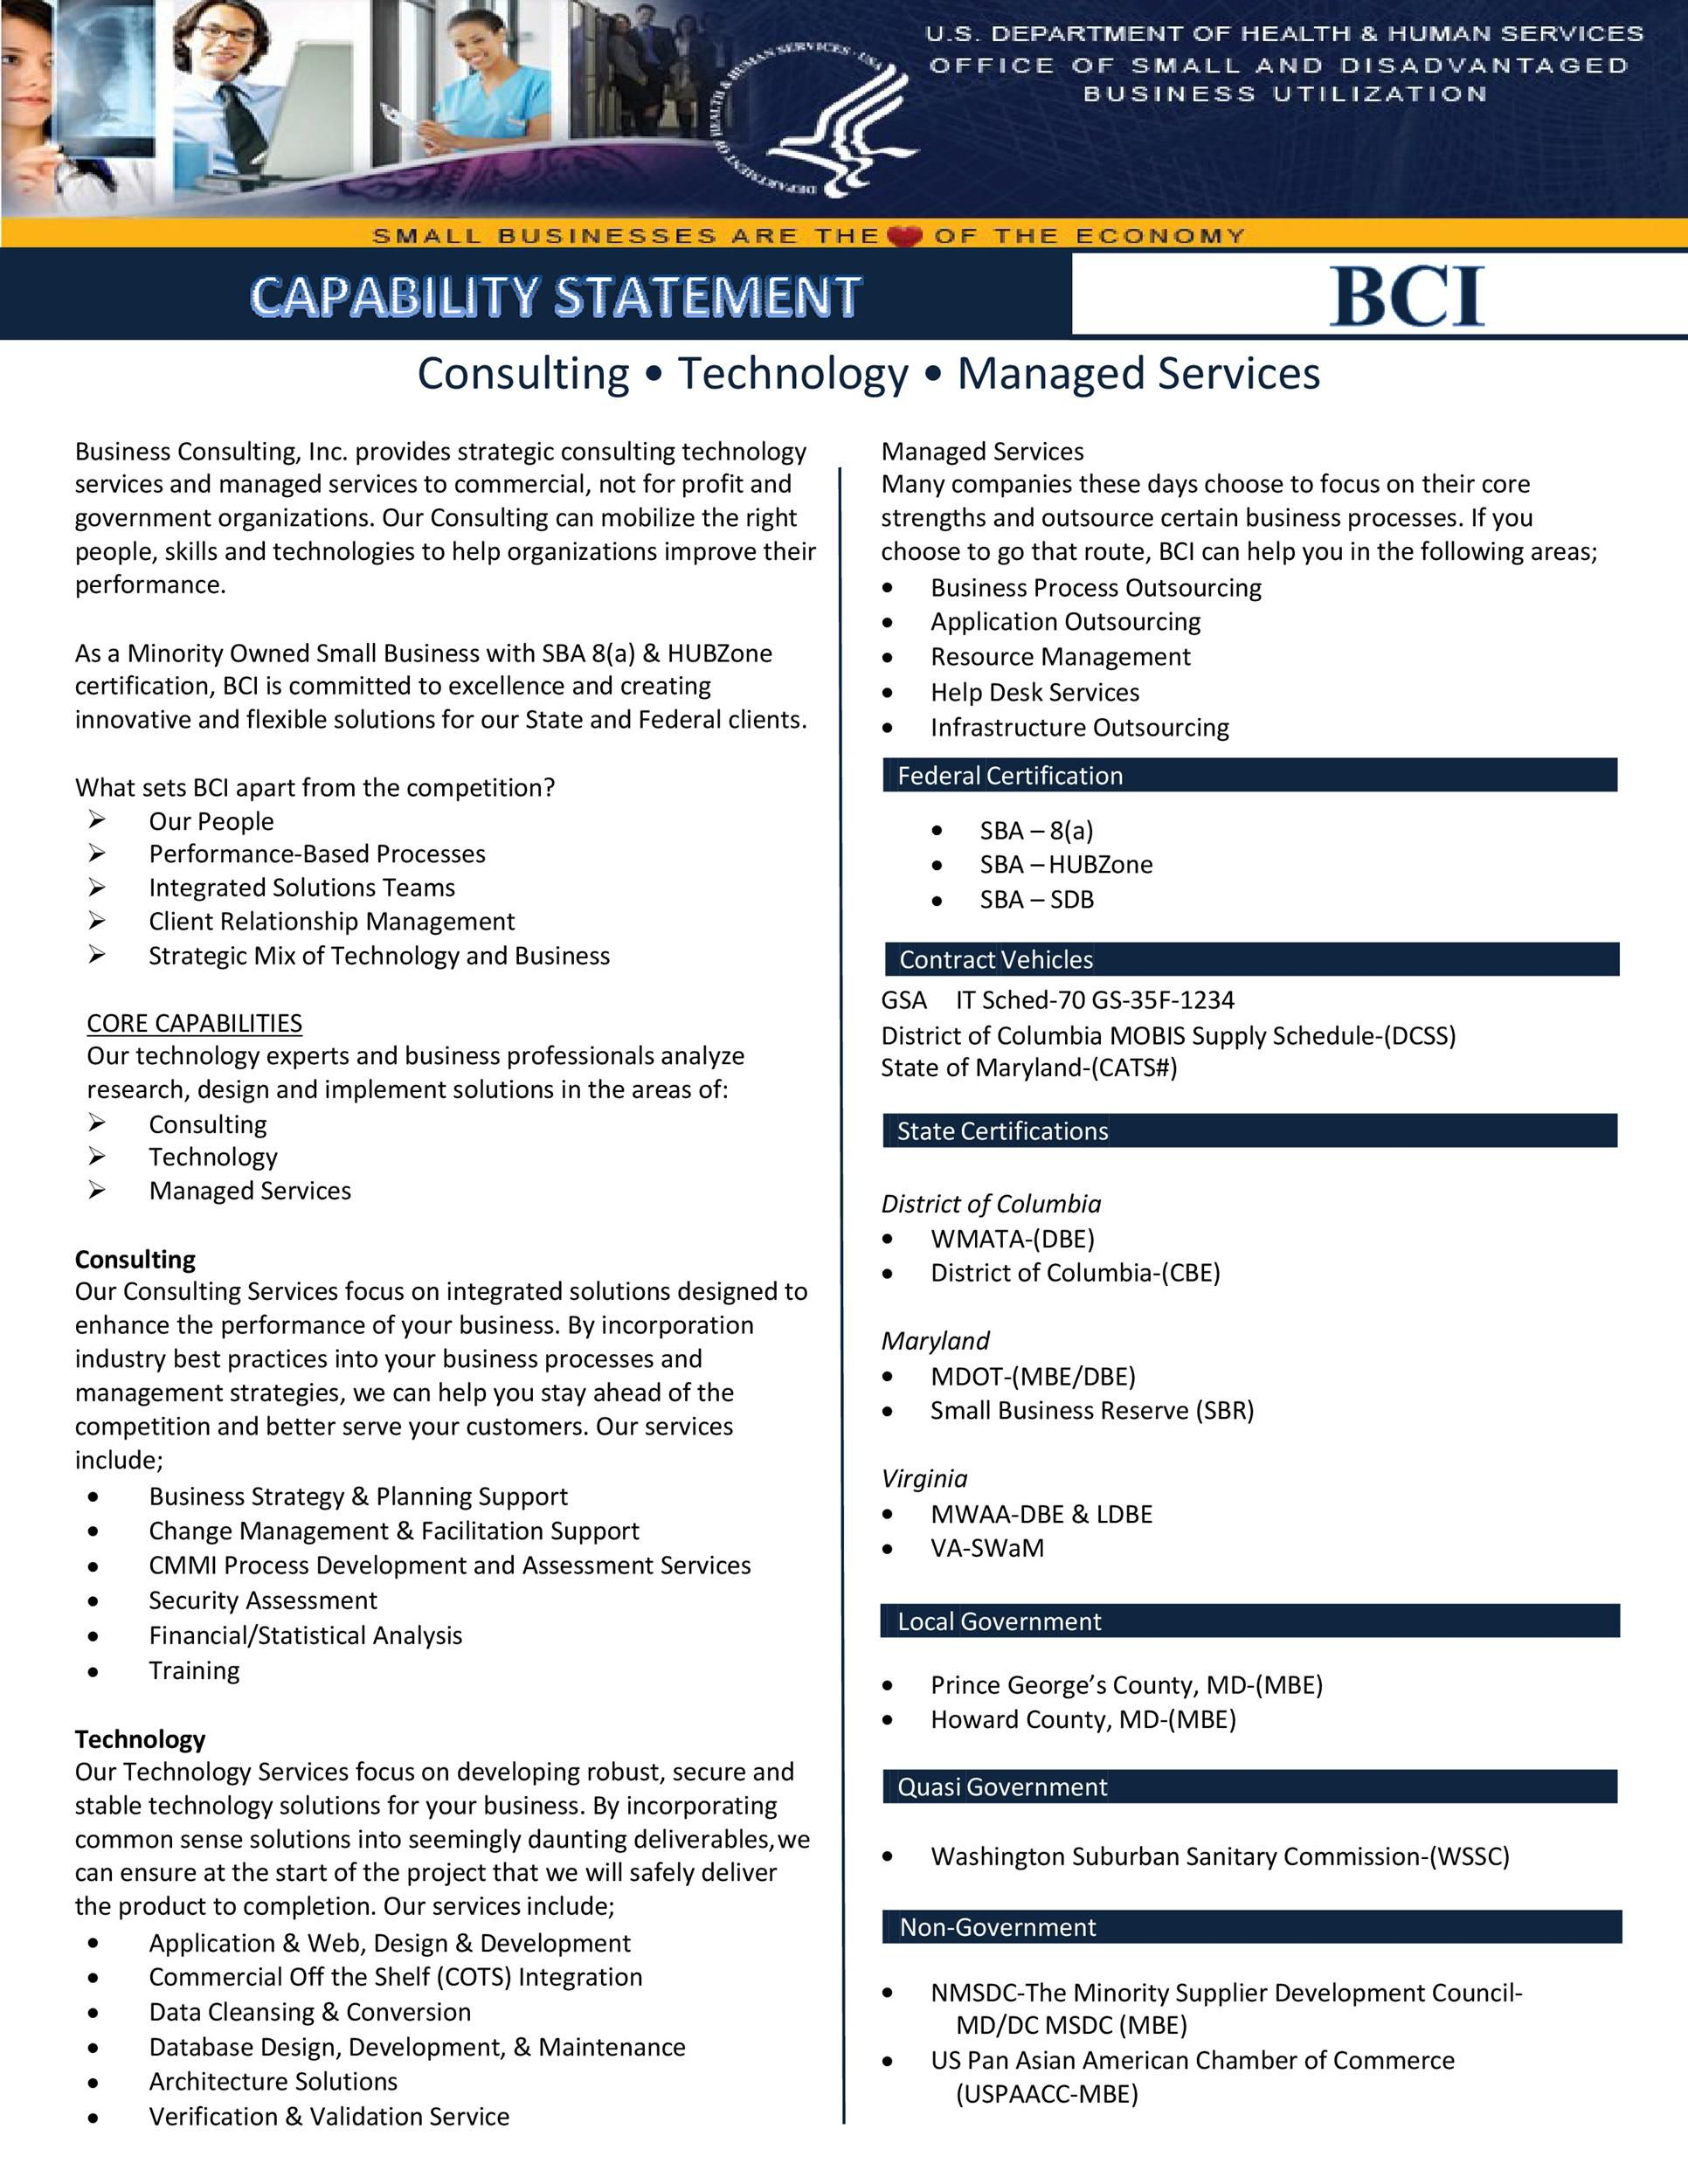 007 Dreaded Capability Statement Template Word Doc Example  Document FreeFull